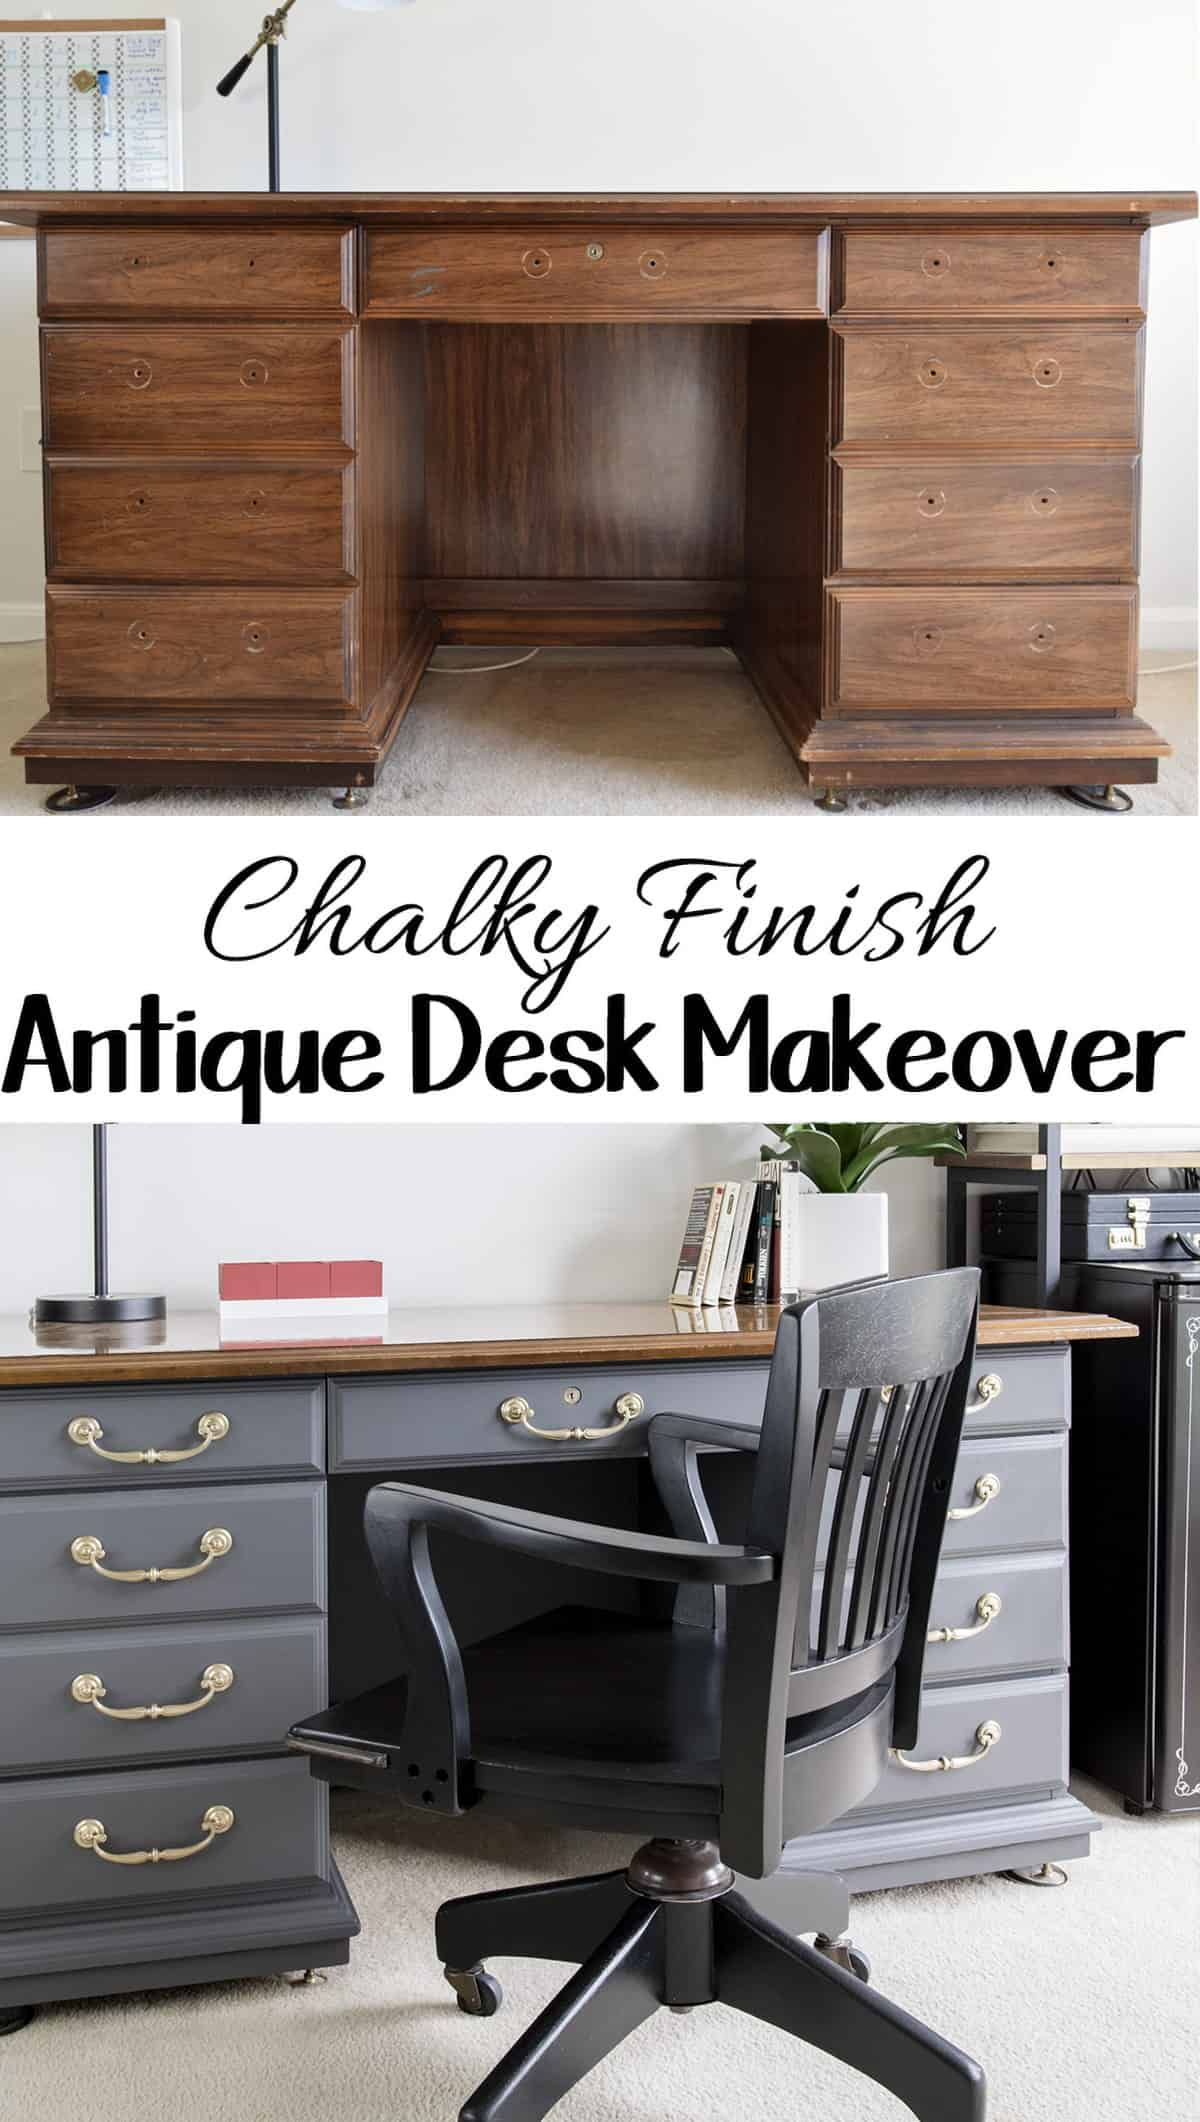 Vintage desk in home office before and after refinishing with chalky finish gray paint and brass hardware.